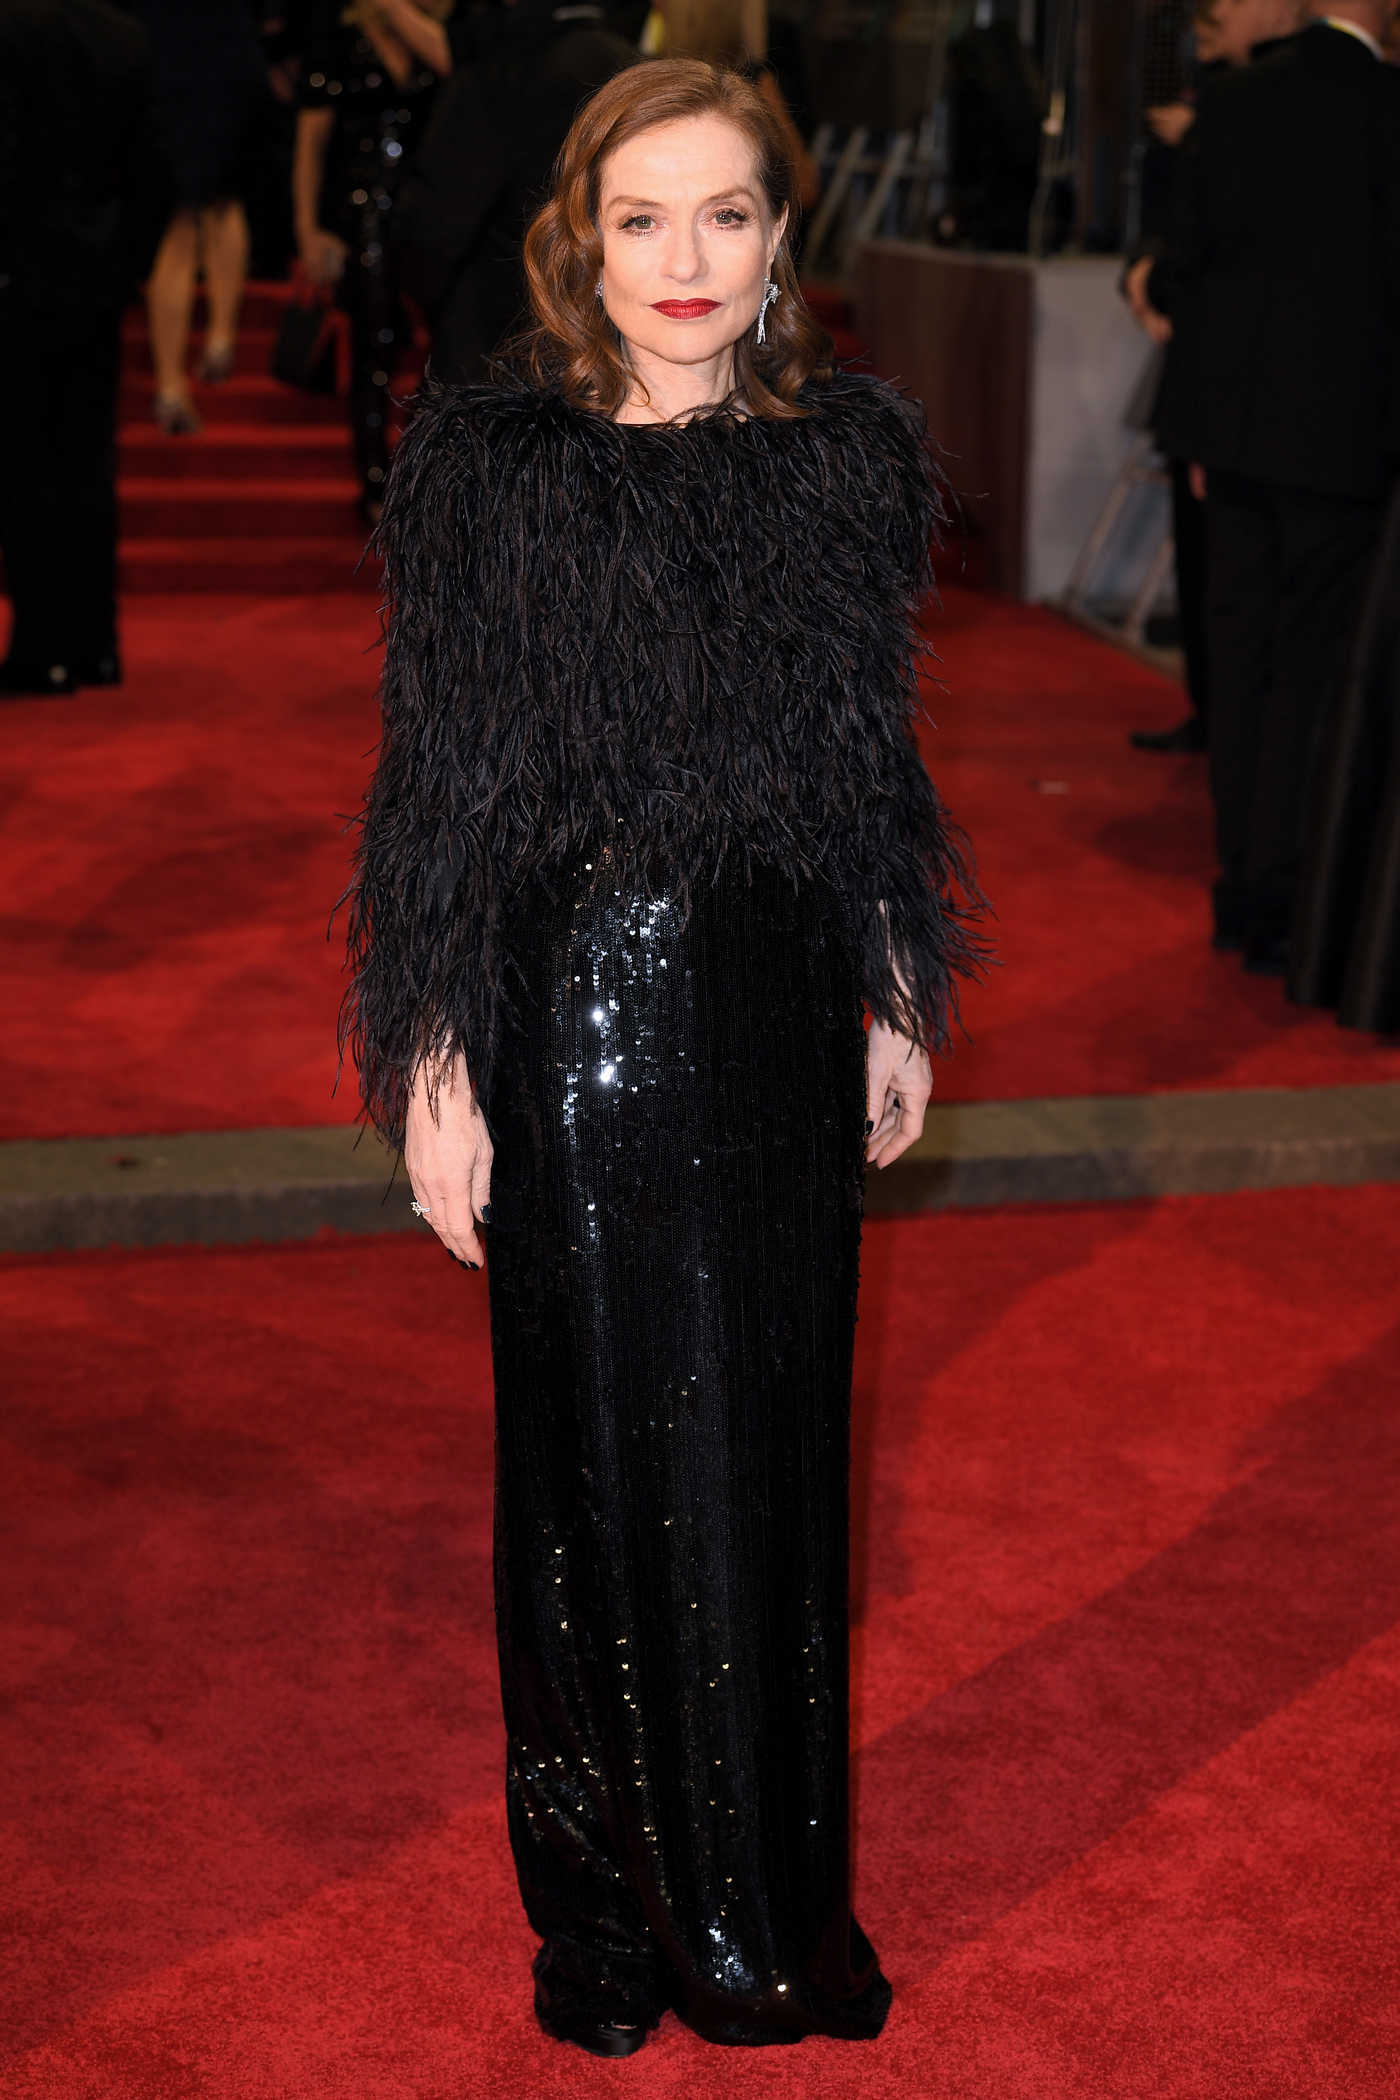 Isabelle Huppert at the 71st British Academy Film Awards at Royal Albert Hall in London 02/18/2018